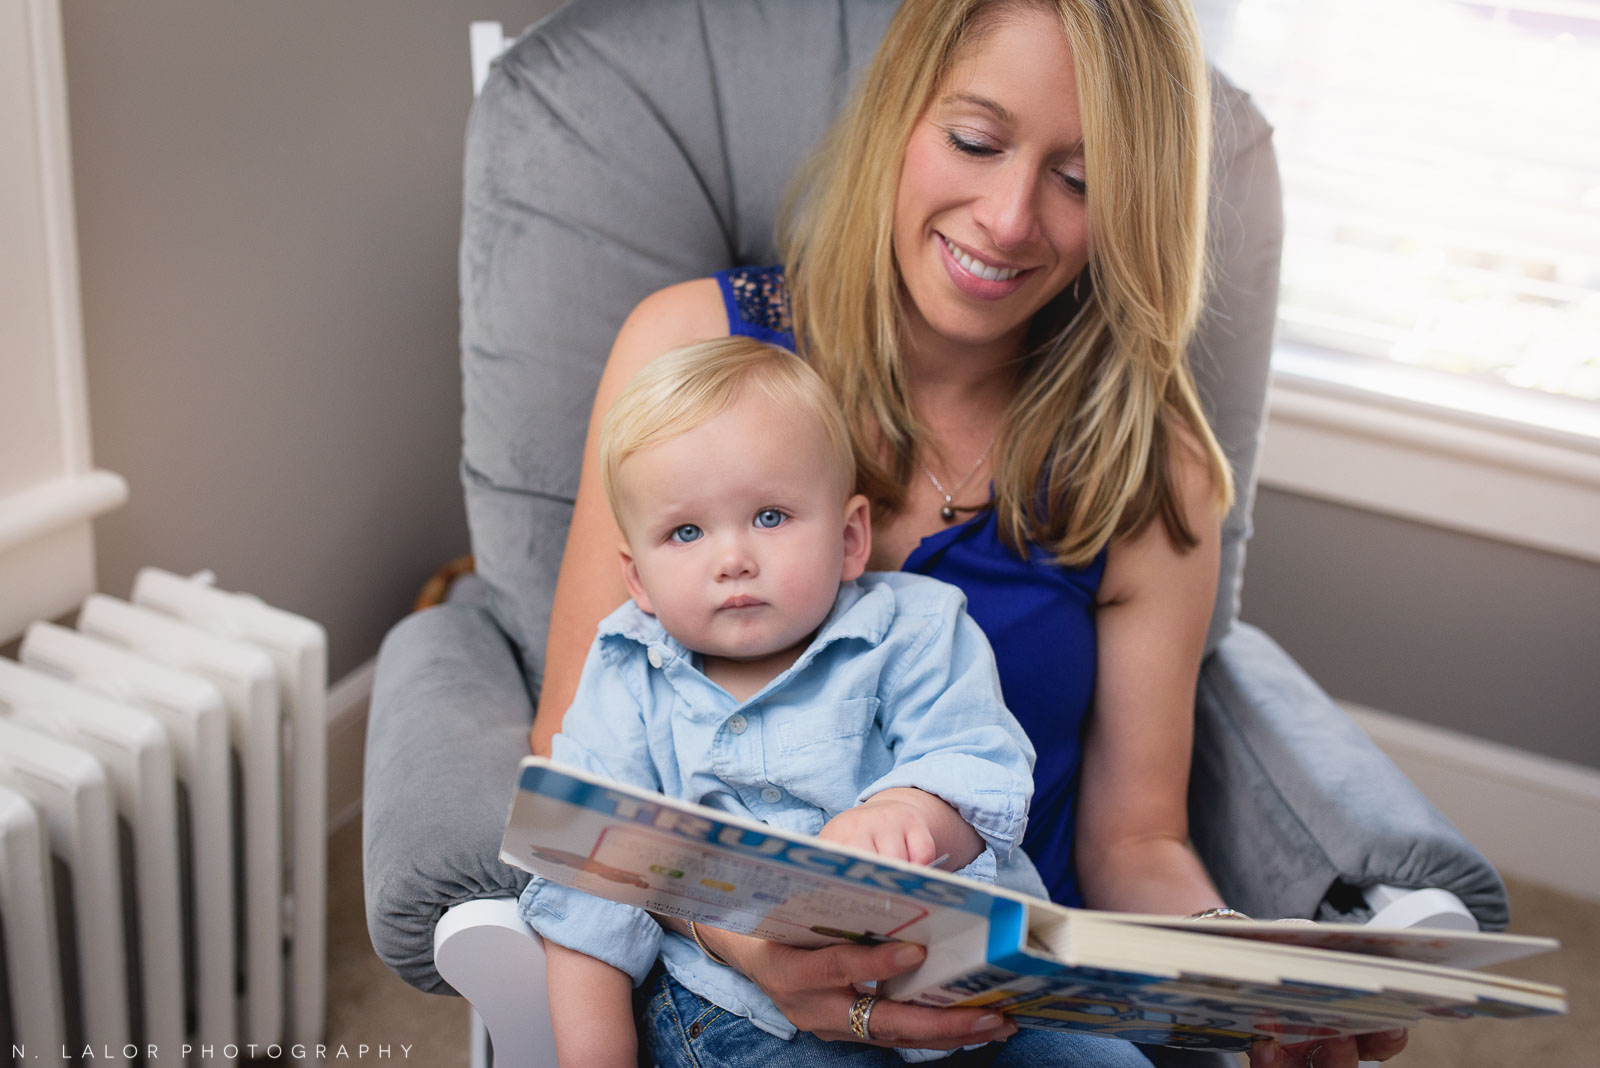 Reading with Mom. Lifestyle family photo session with N. Lalor Photography in Fairfield, CT.